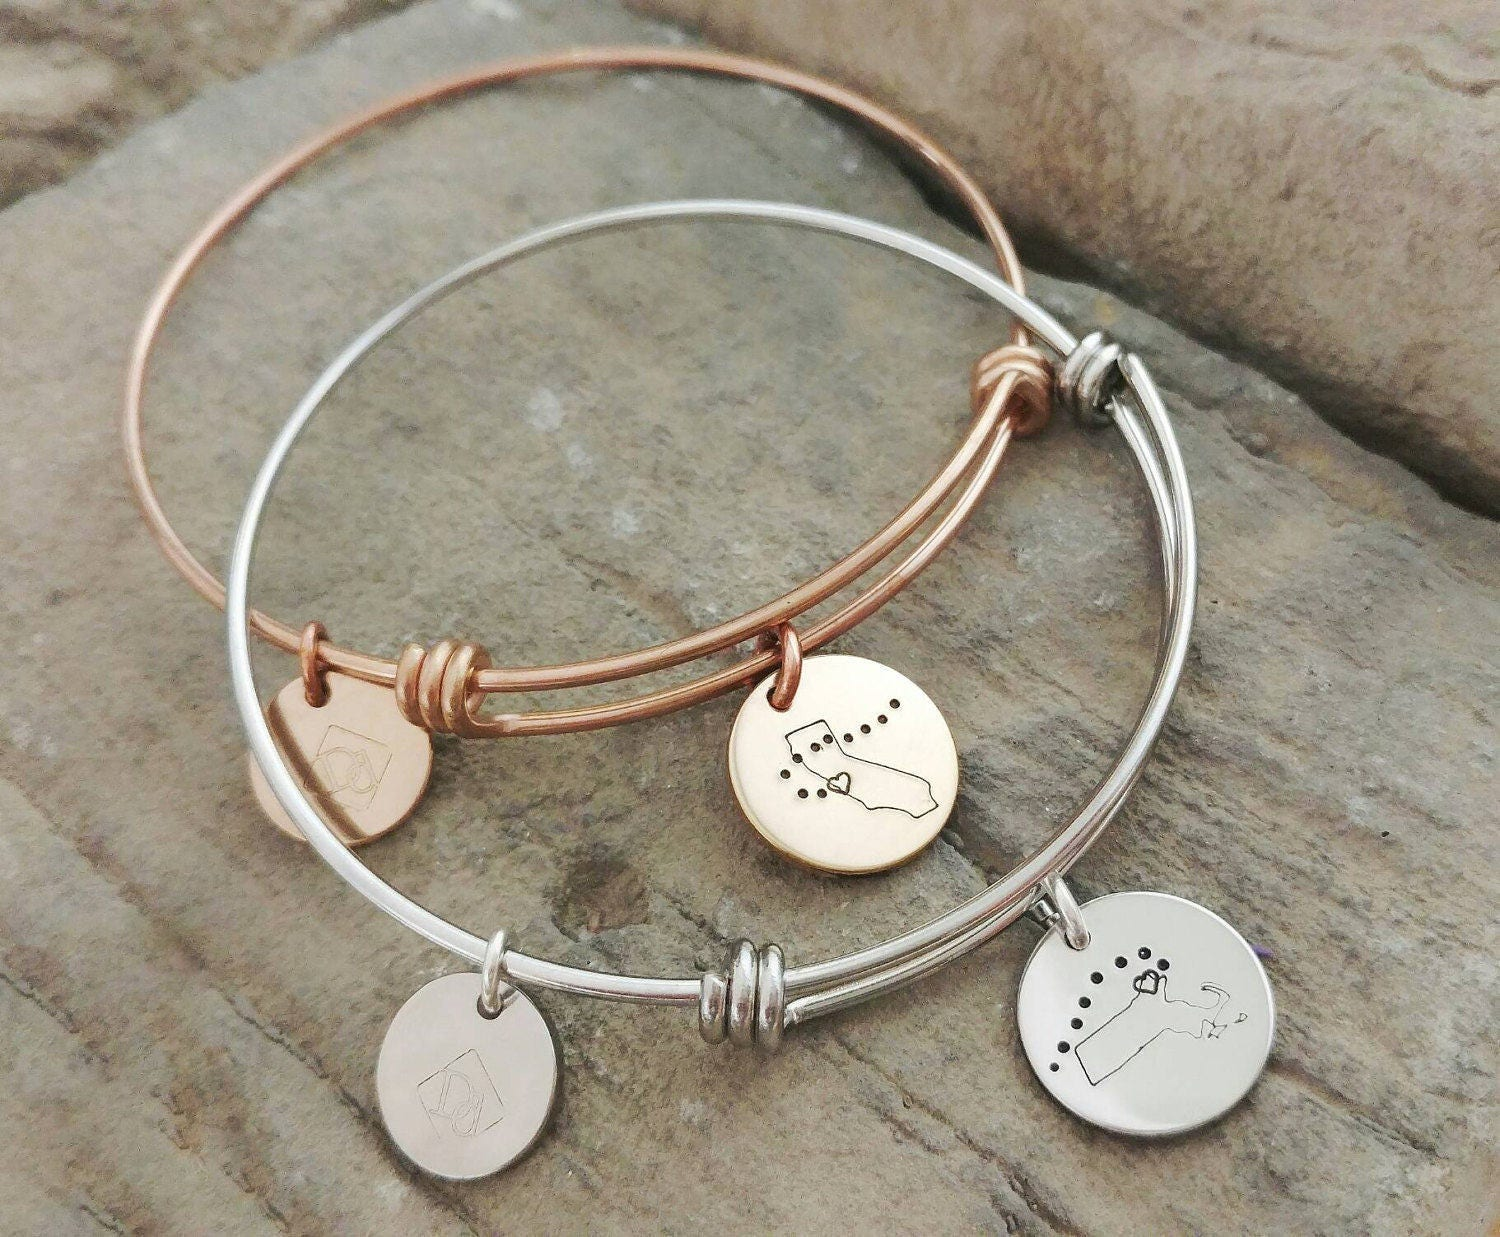 3c72fcf01f1e2 Best Friend Bracelets - Long Distance Friendship Jewelry -Best Friend Gift  - Moving Away Bracelets - Long Distance Friendship Bracelets